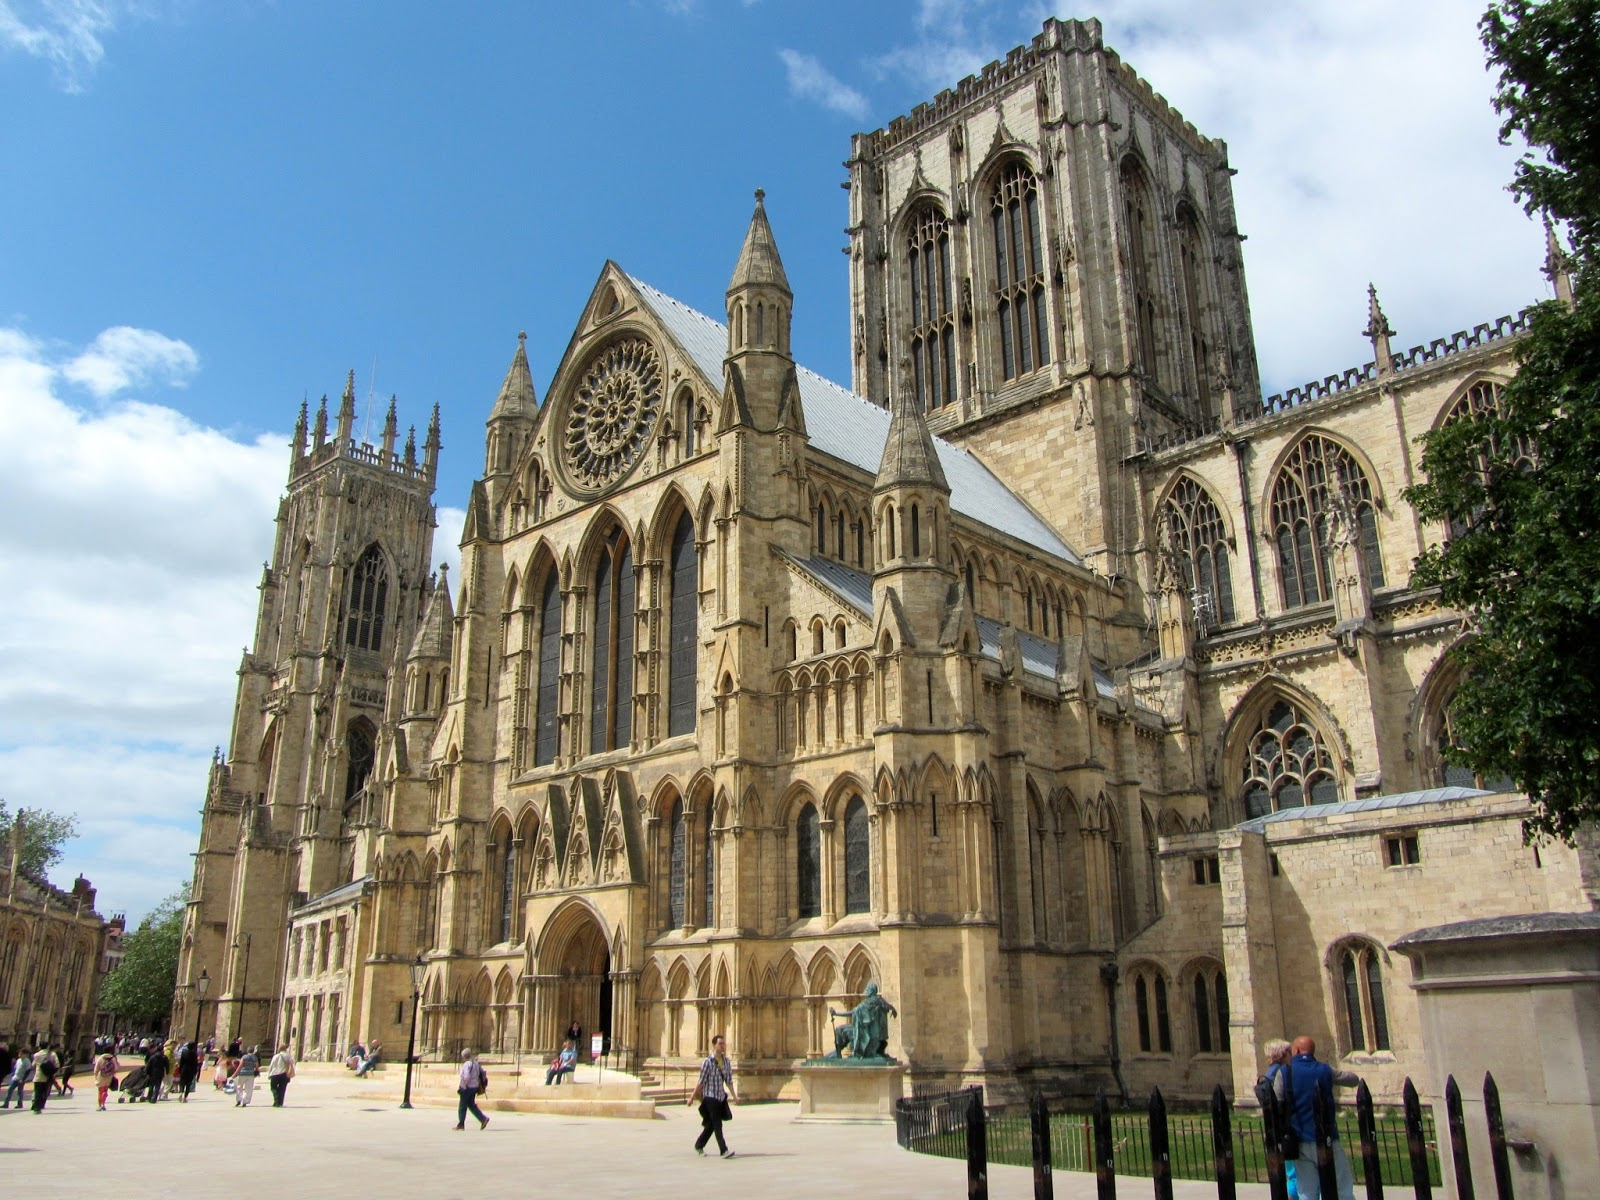 A breathtaking view of York Minster